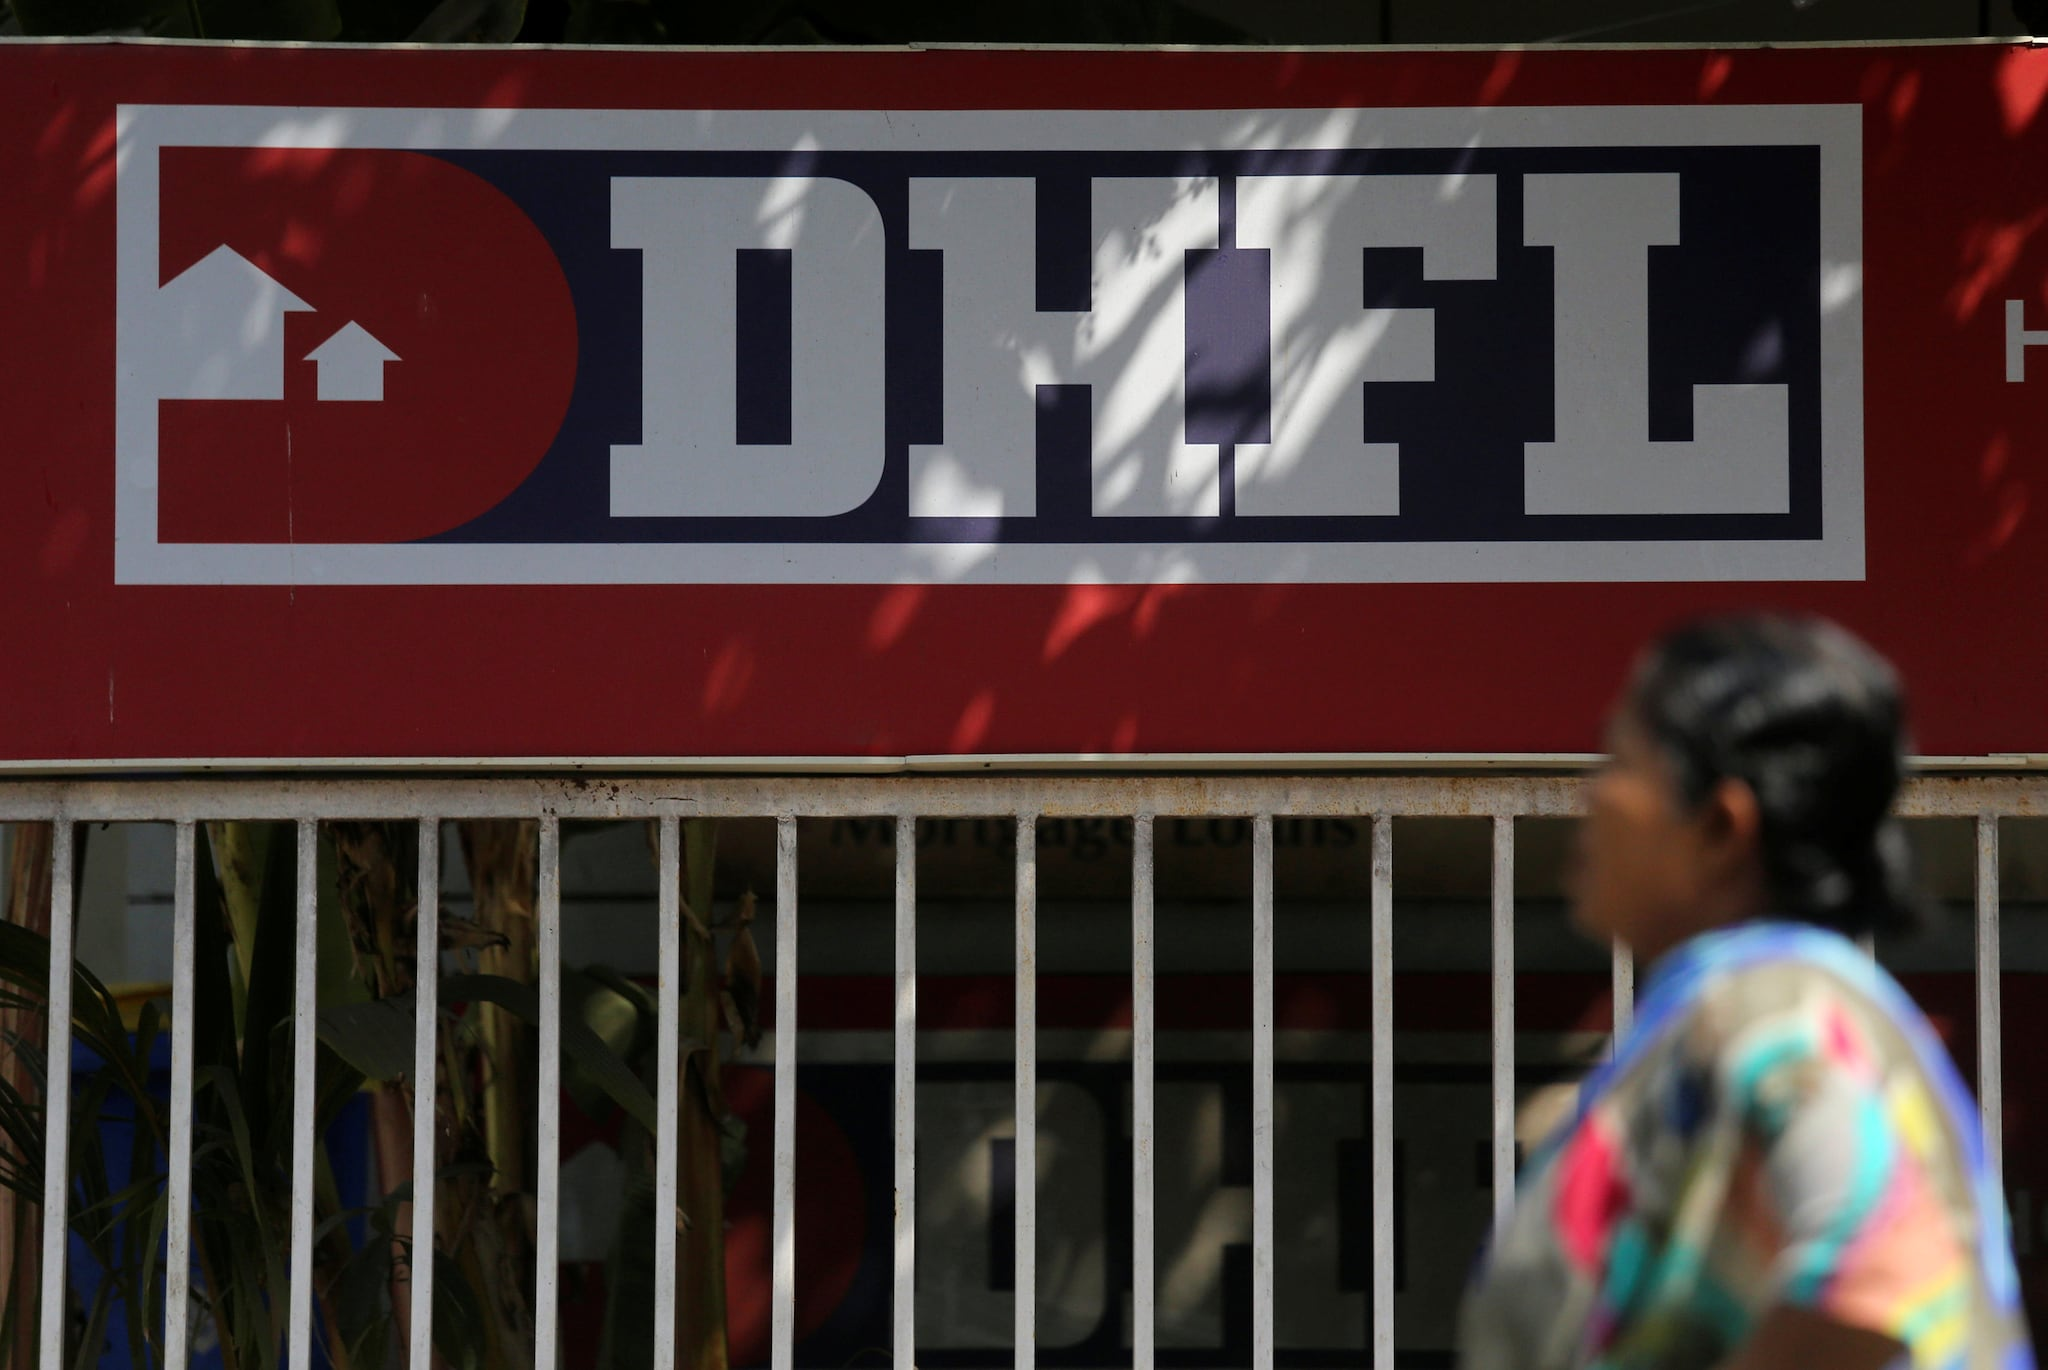 DHFL: The NBFC said it has made more than Rs. 30,000 crores of principal and interest payments to its creditors including its fixed deposit holders. Collection efficiency has remained steady despite the increase in interest rates undertaken by the company in the last few months at 99.3%. (Image: Reuters)